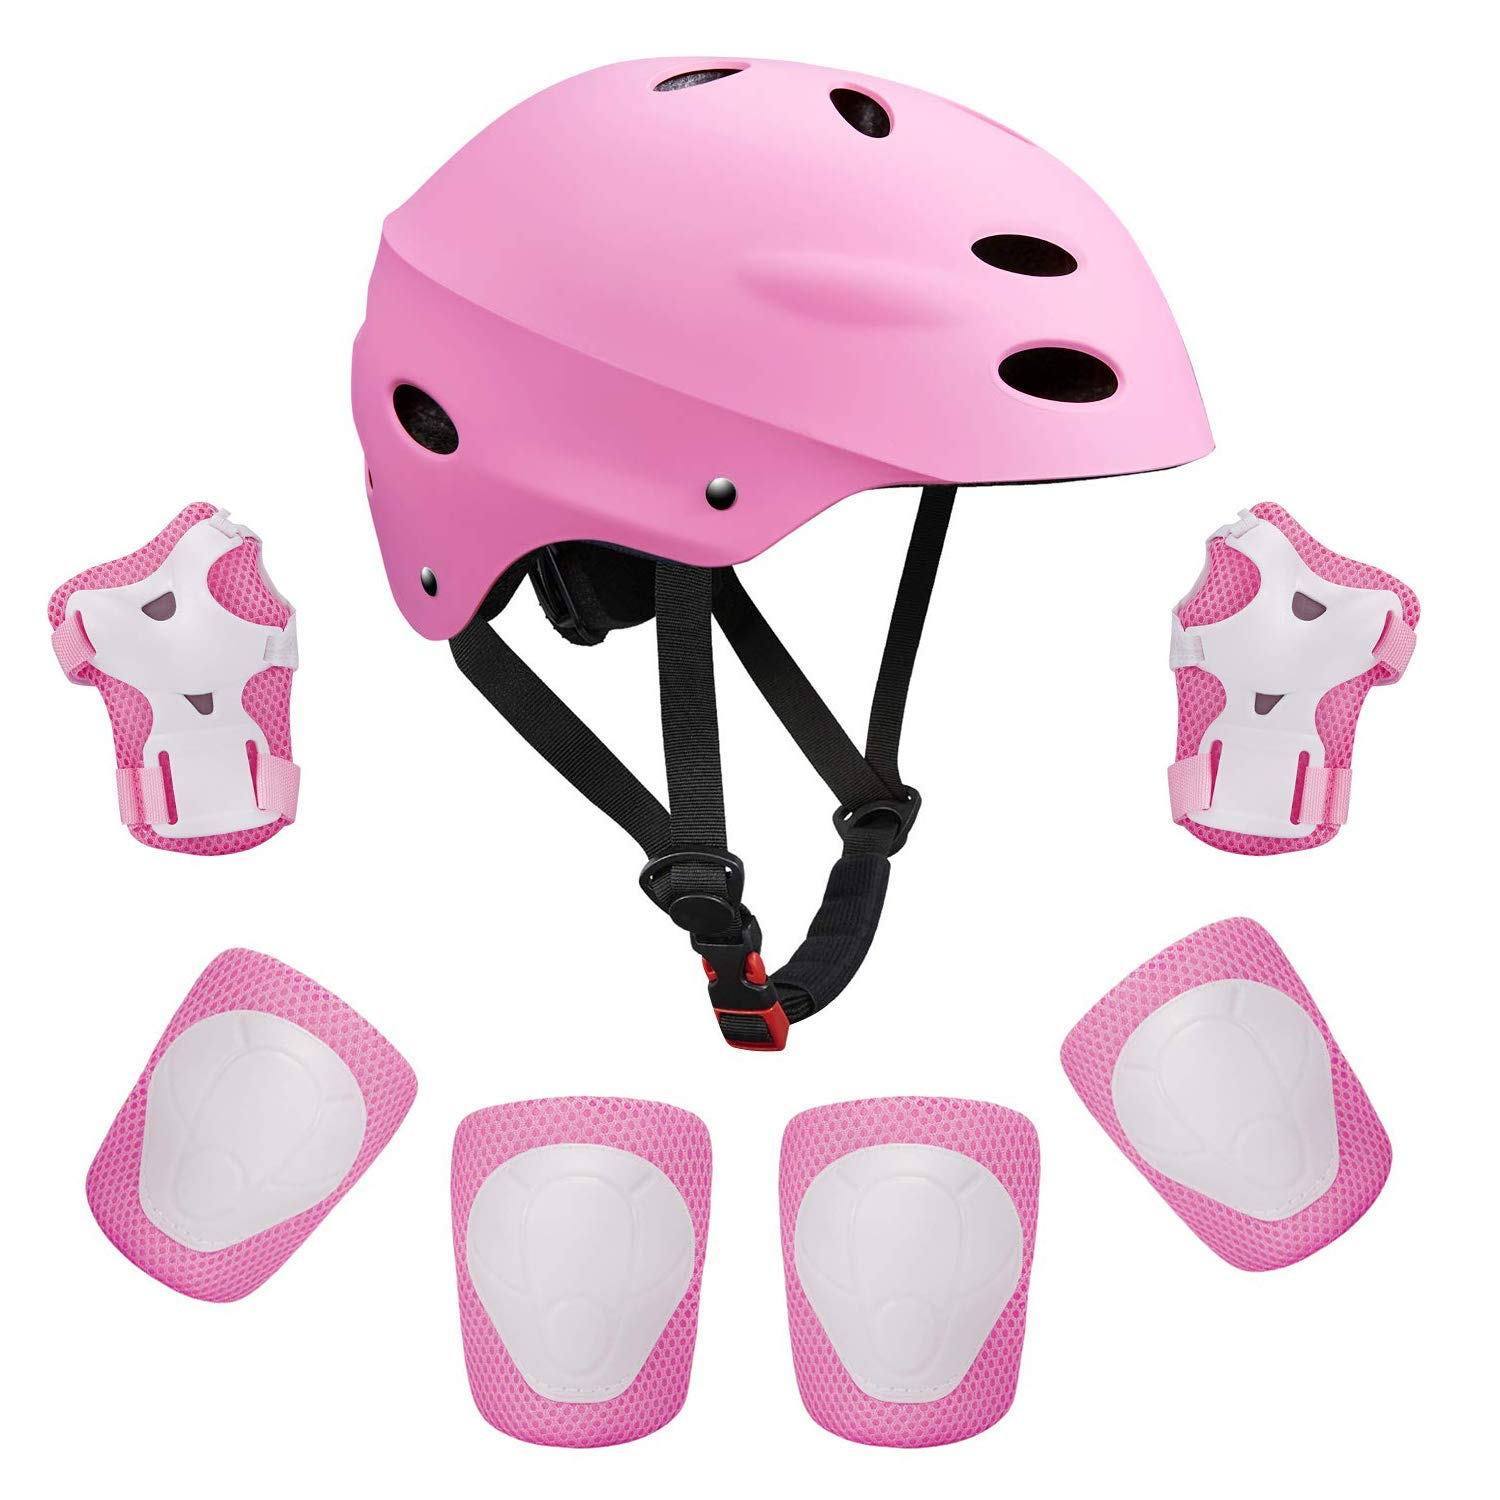 Kids Adjustable Helmet Sports Protective Gear Set Suitable for Ages 3-8 Years Toddler Boys Girls Knee Pads Elbow Pads Wrist Pads for Bike Bicycle Skateboard Scooter Rollerblading